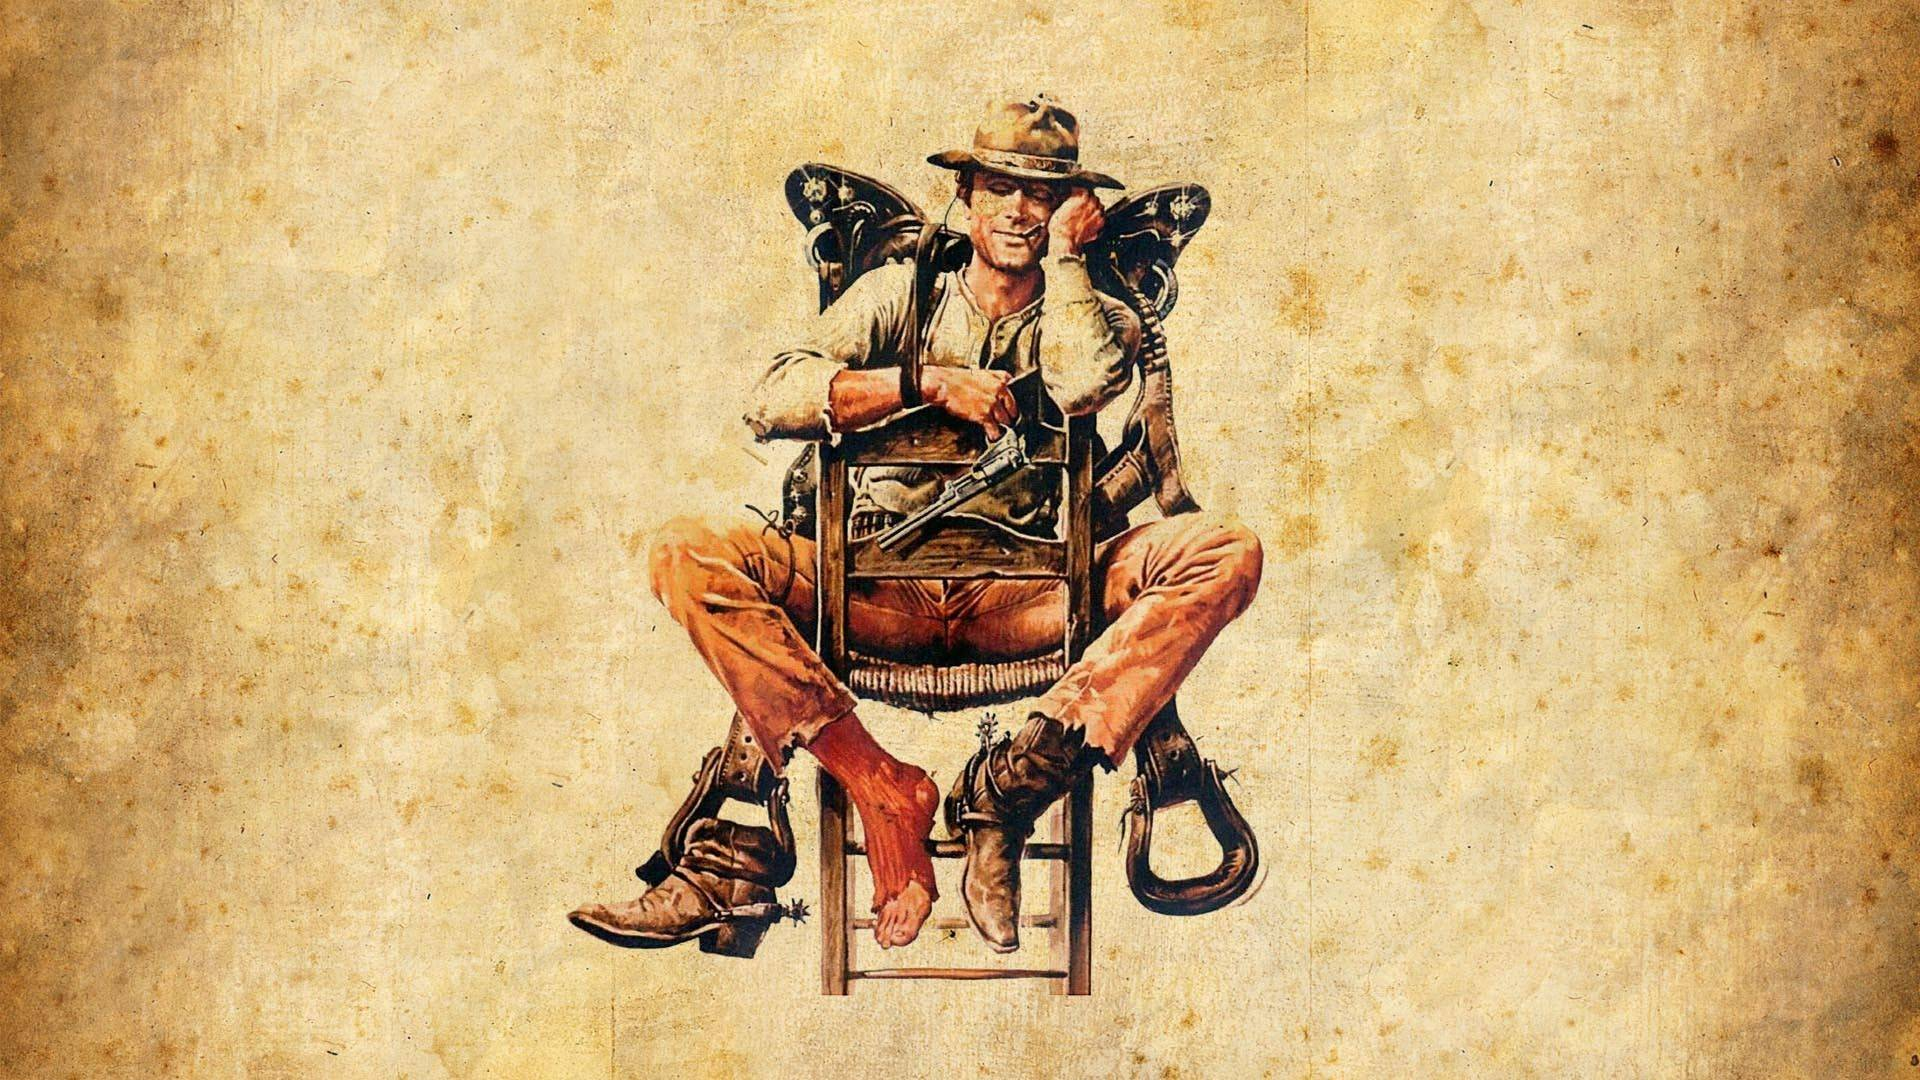 western movies wallpaper wallpapersafari